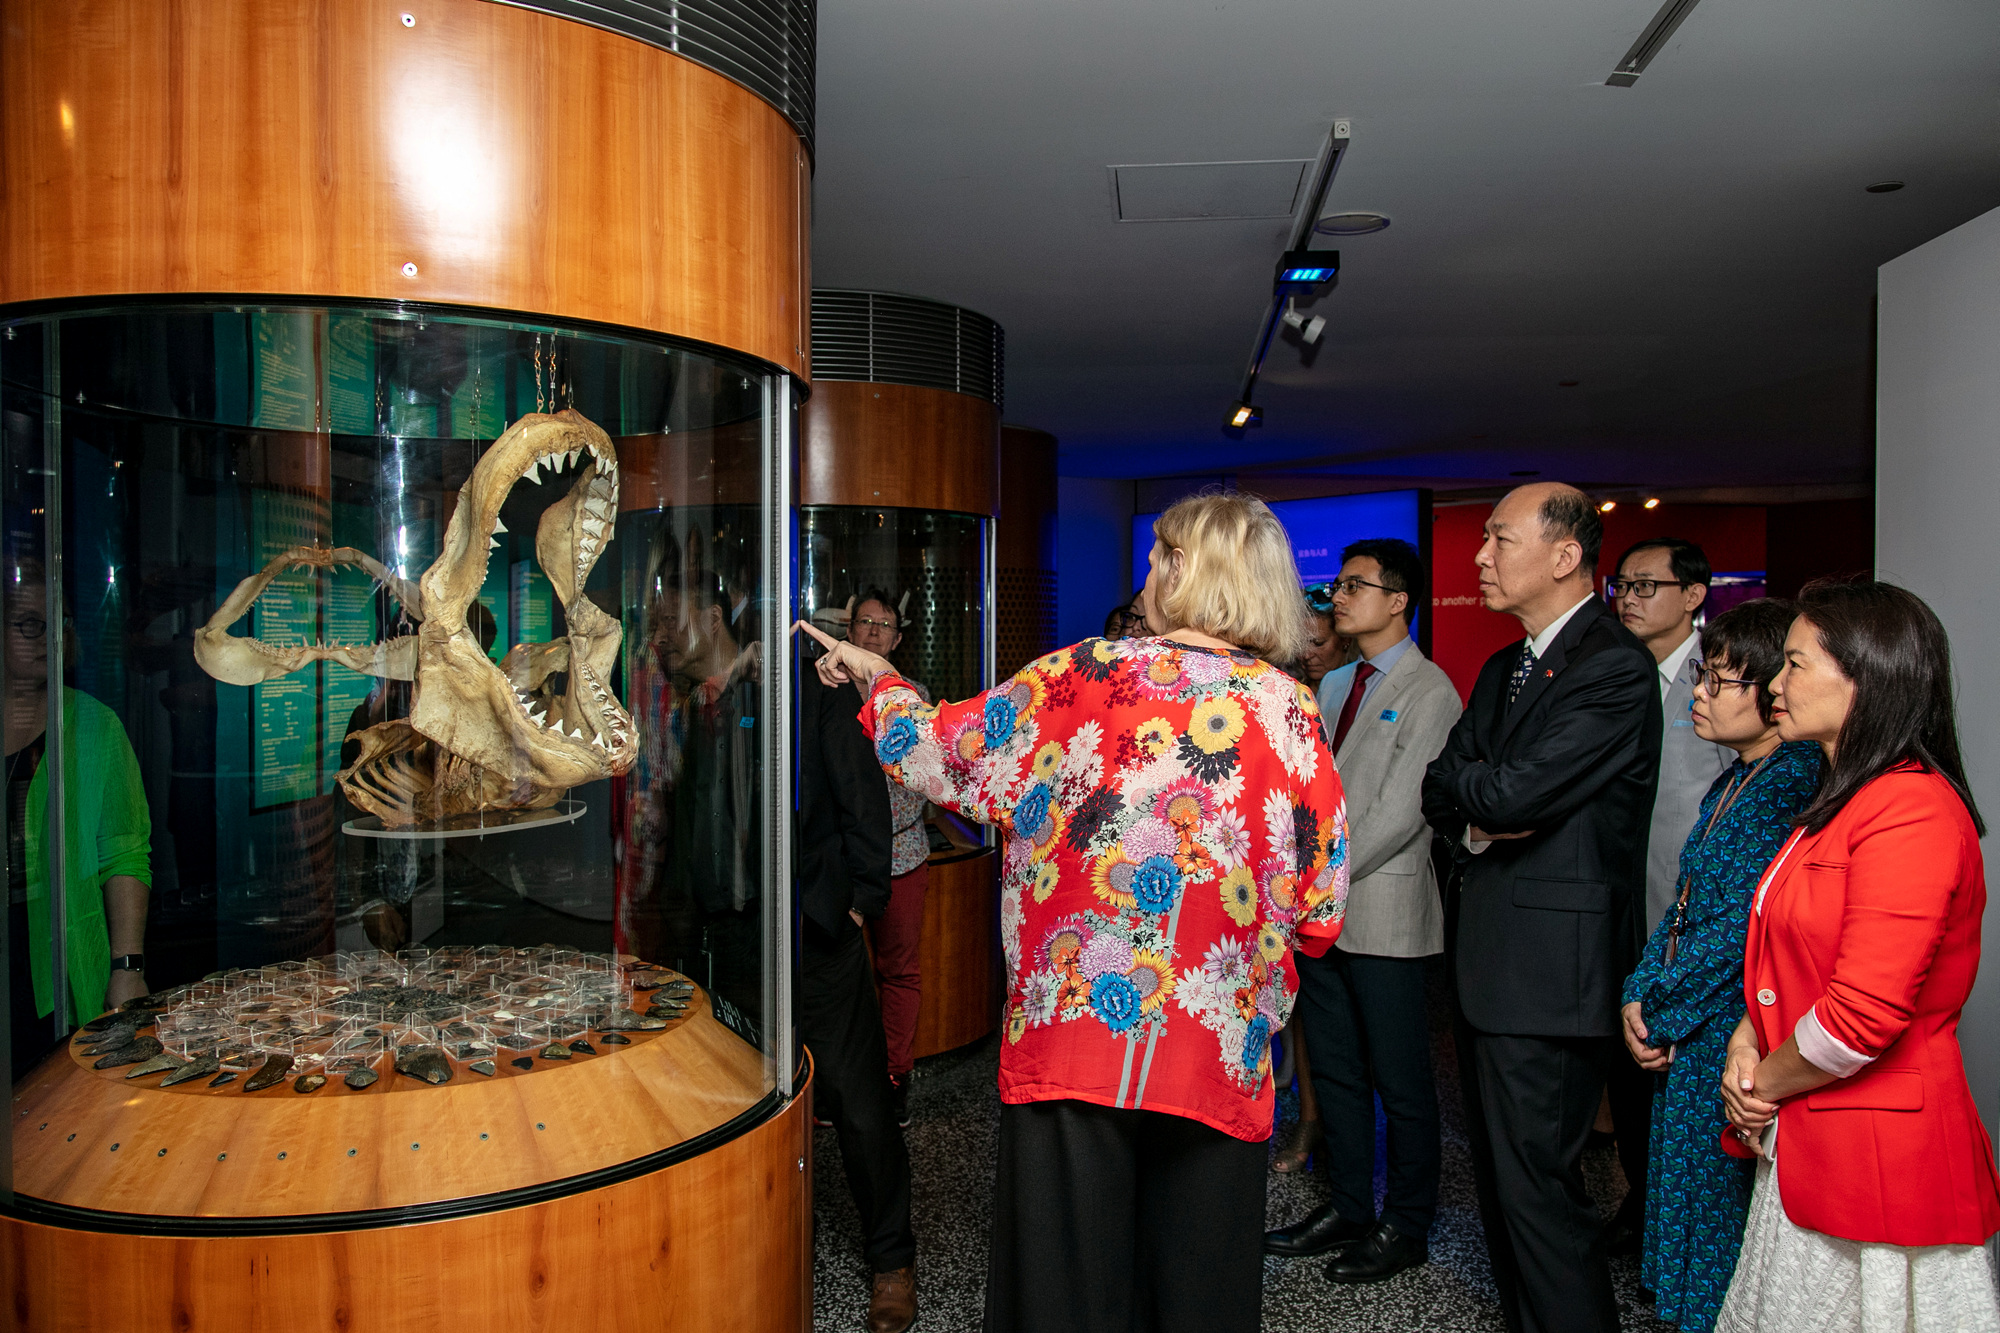 Senior Curator Daina Fletcher leading a tour for the exhibition 'On Sharks and Humanity', February 2019